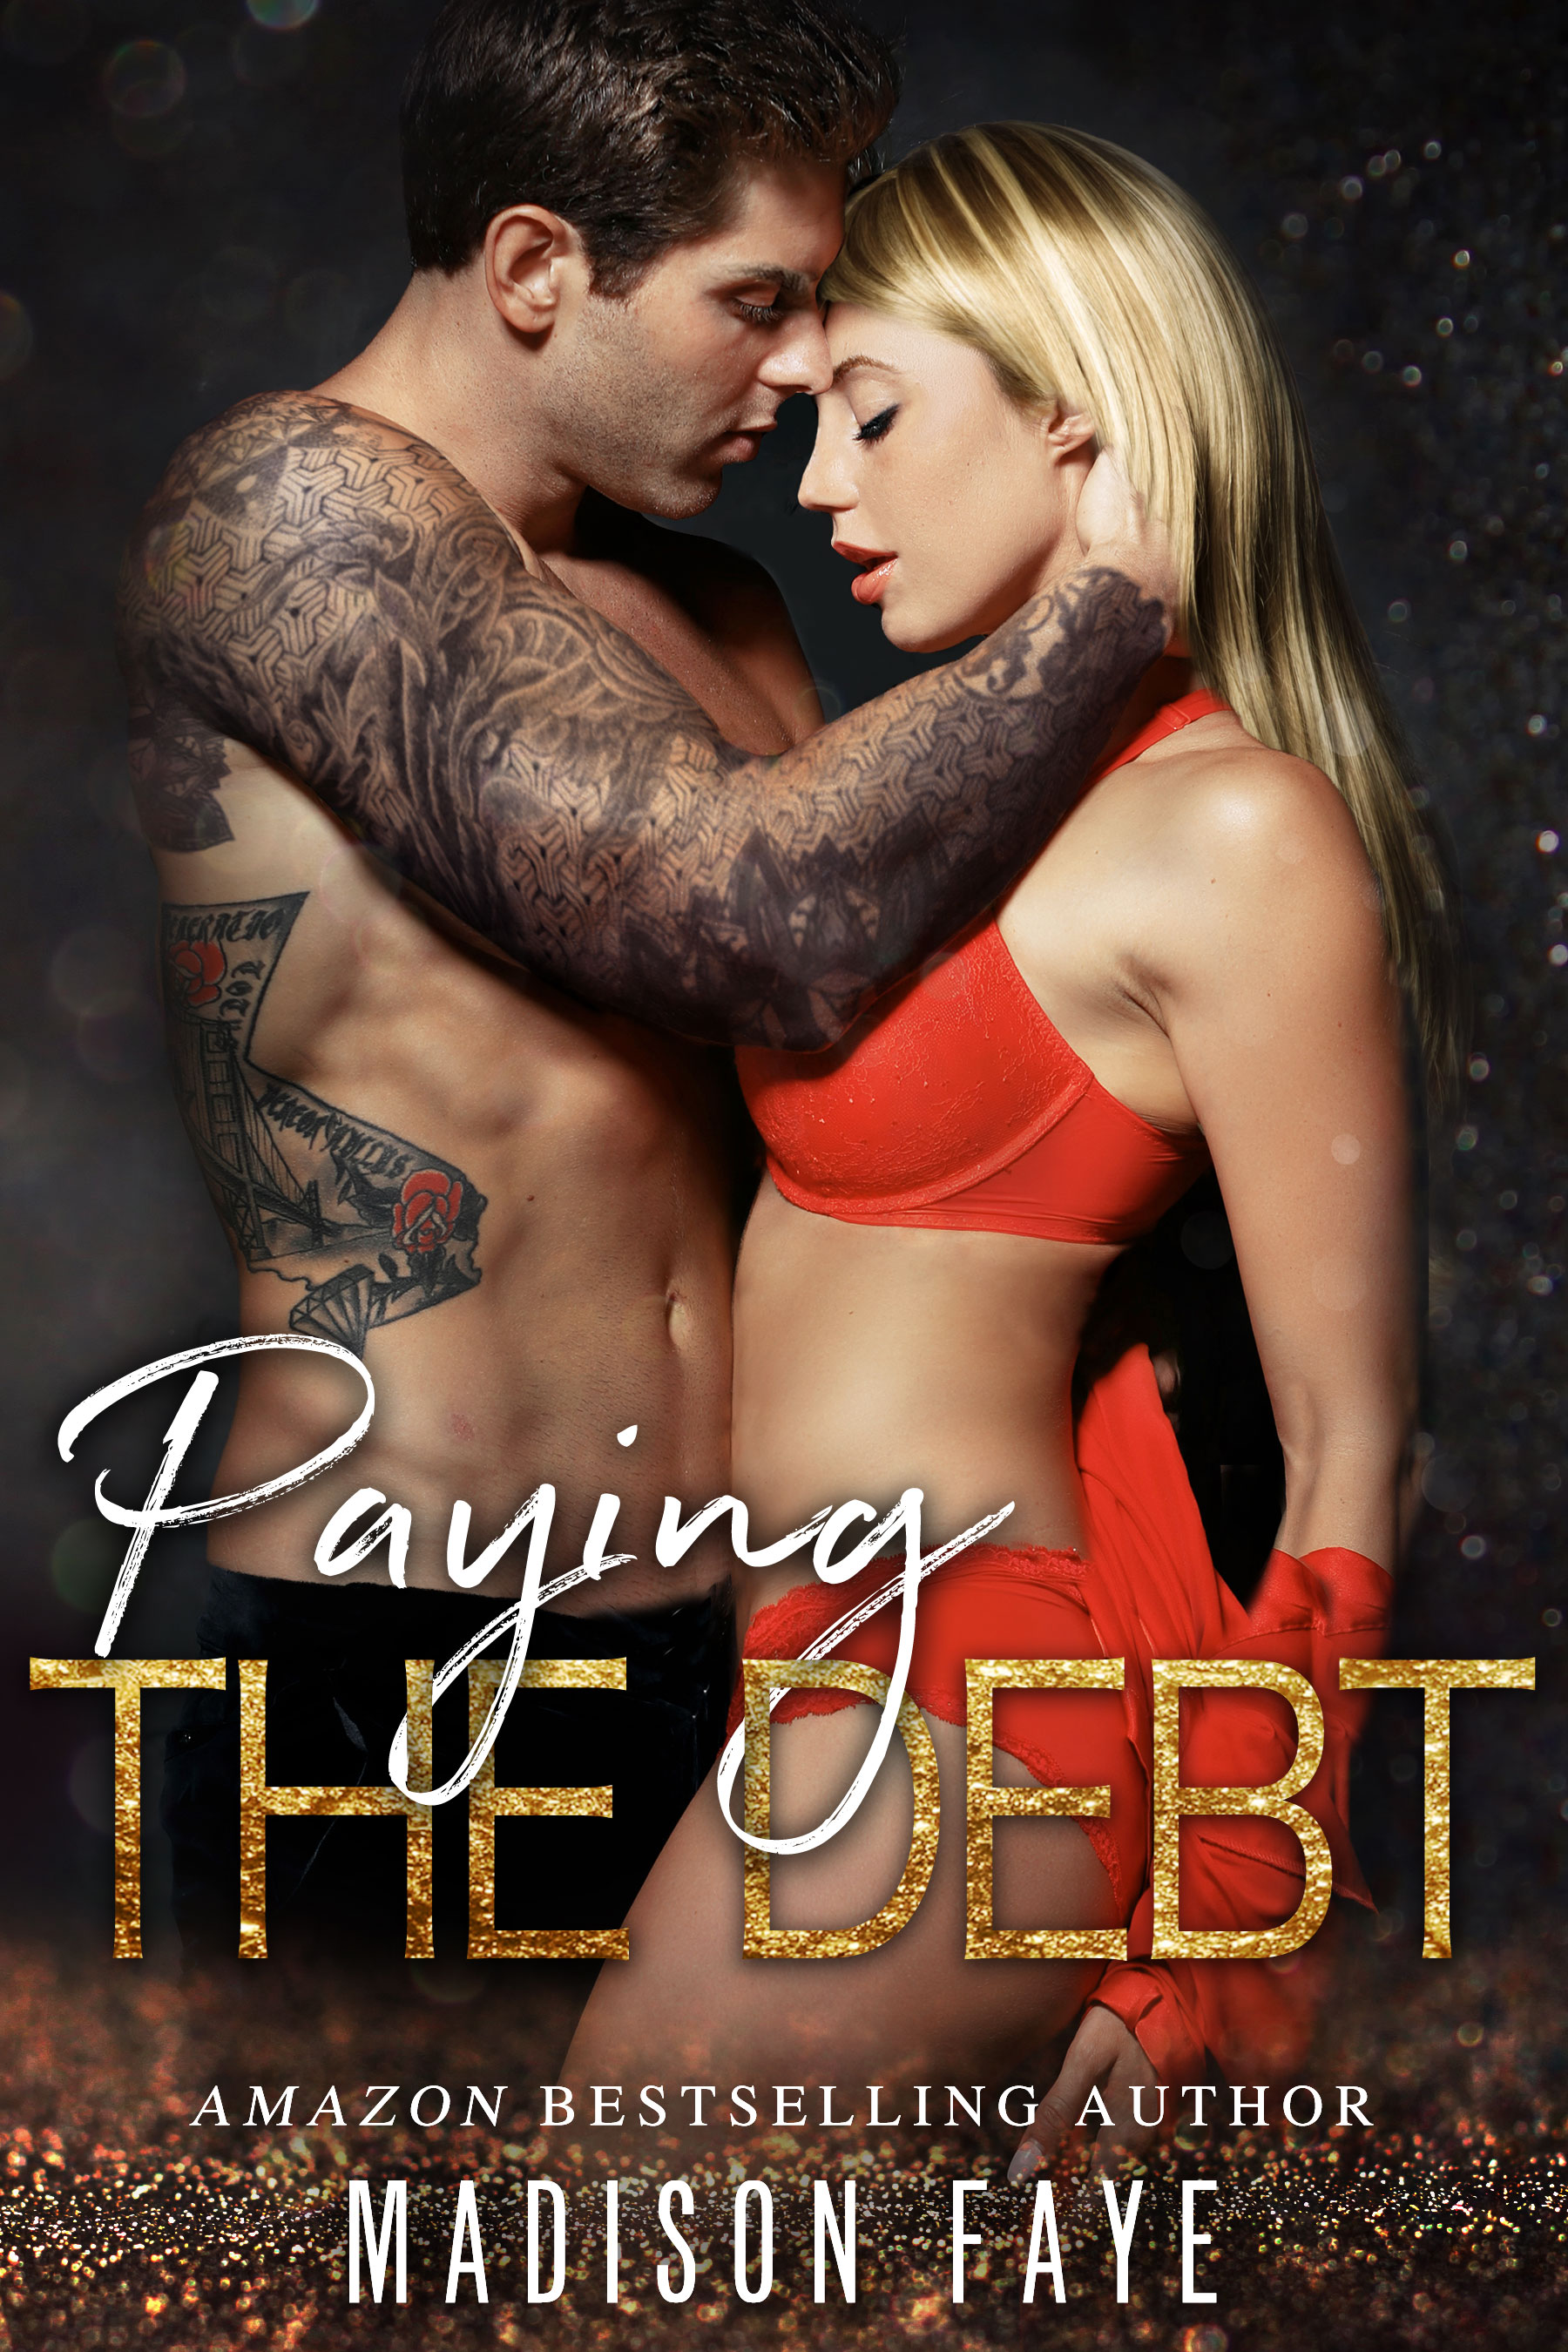 Paying-The-Debt-NEW-Final-cover.jpg